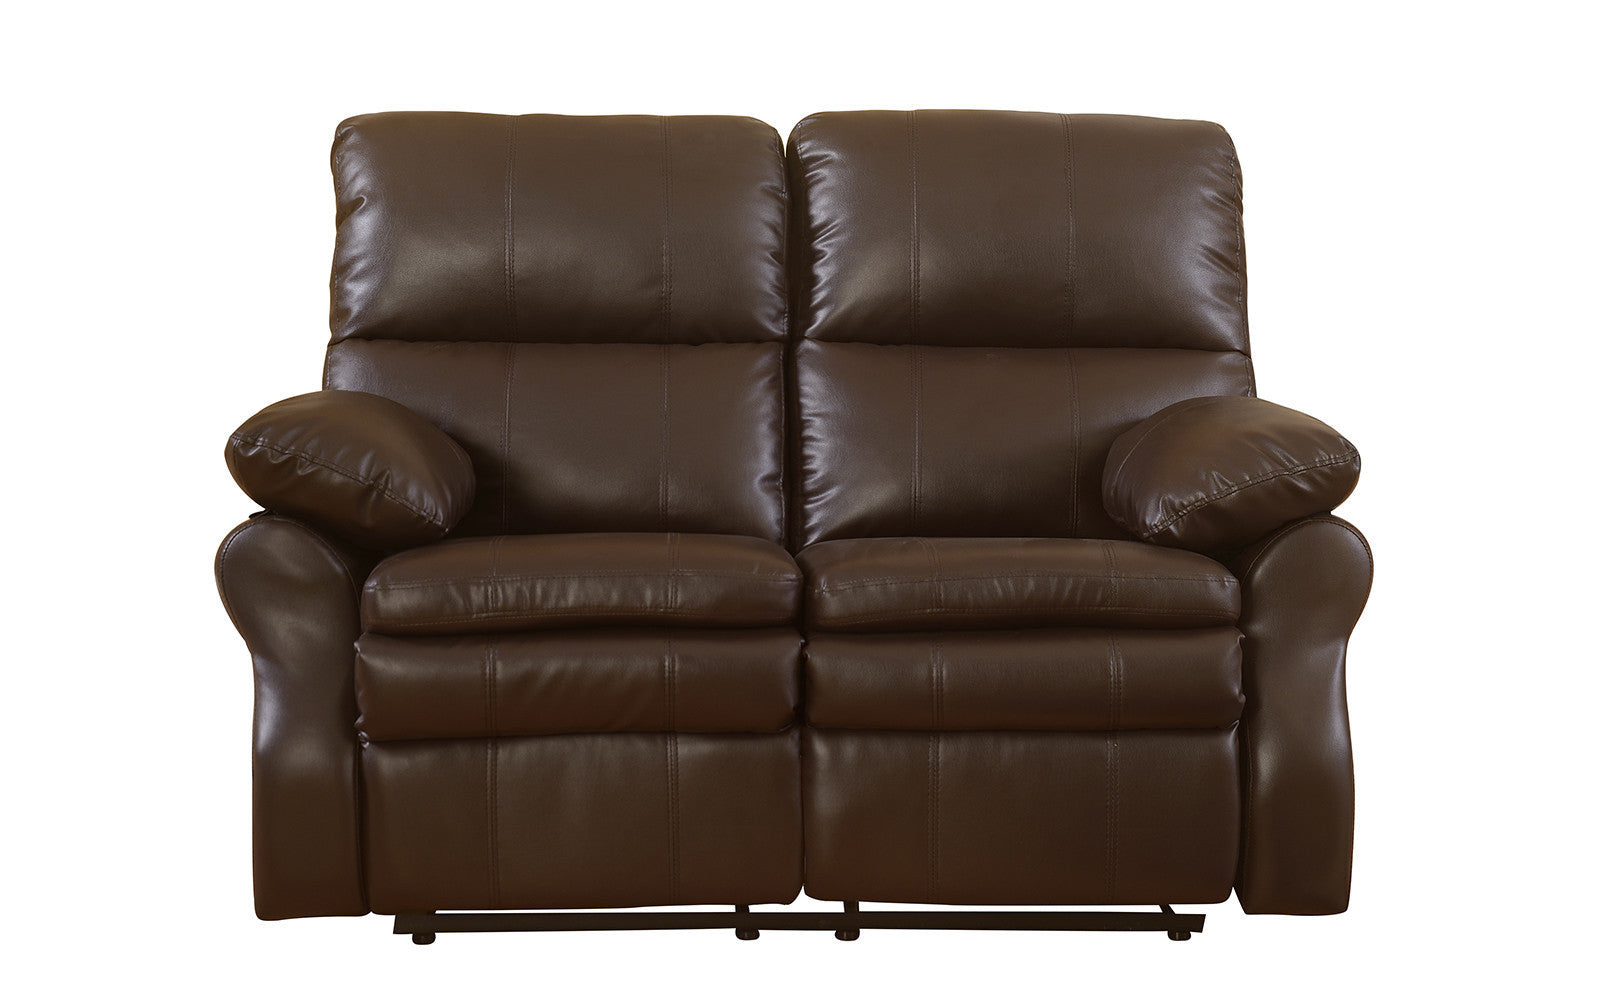 Bonded Leather Recliner Loveseat Image